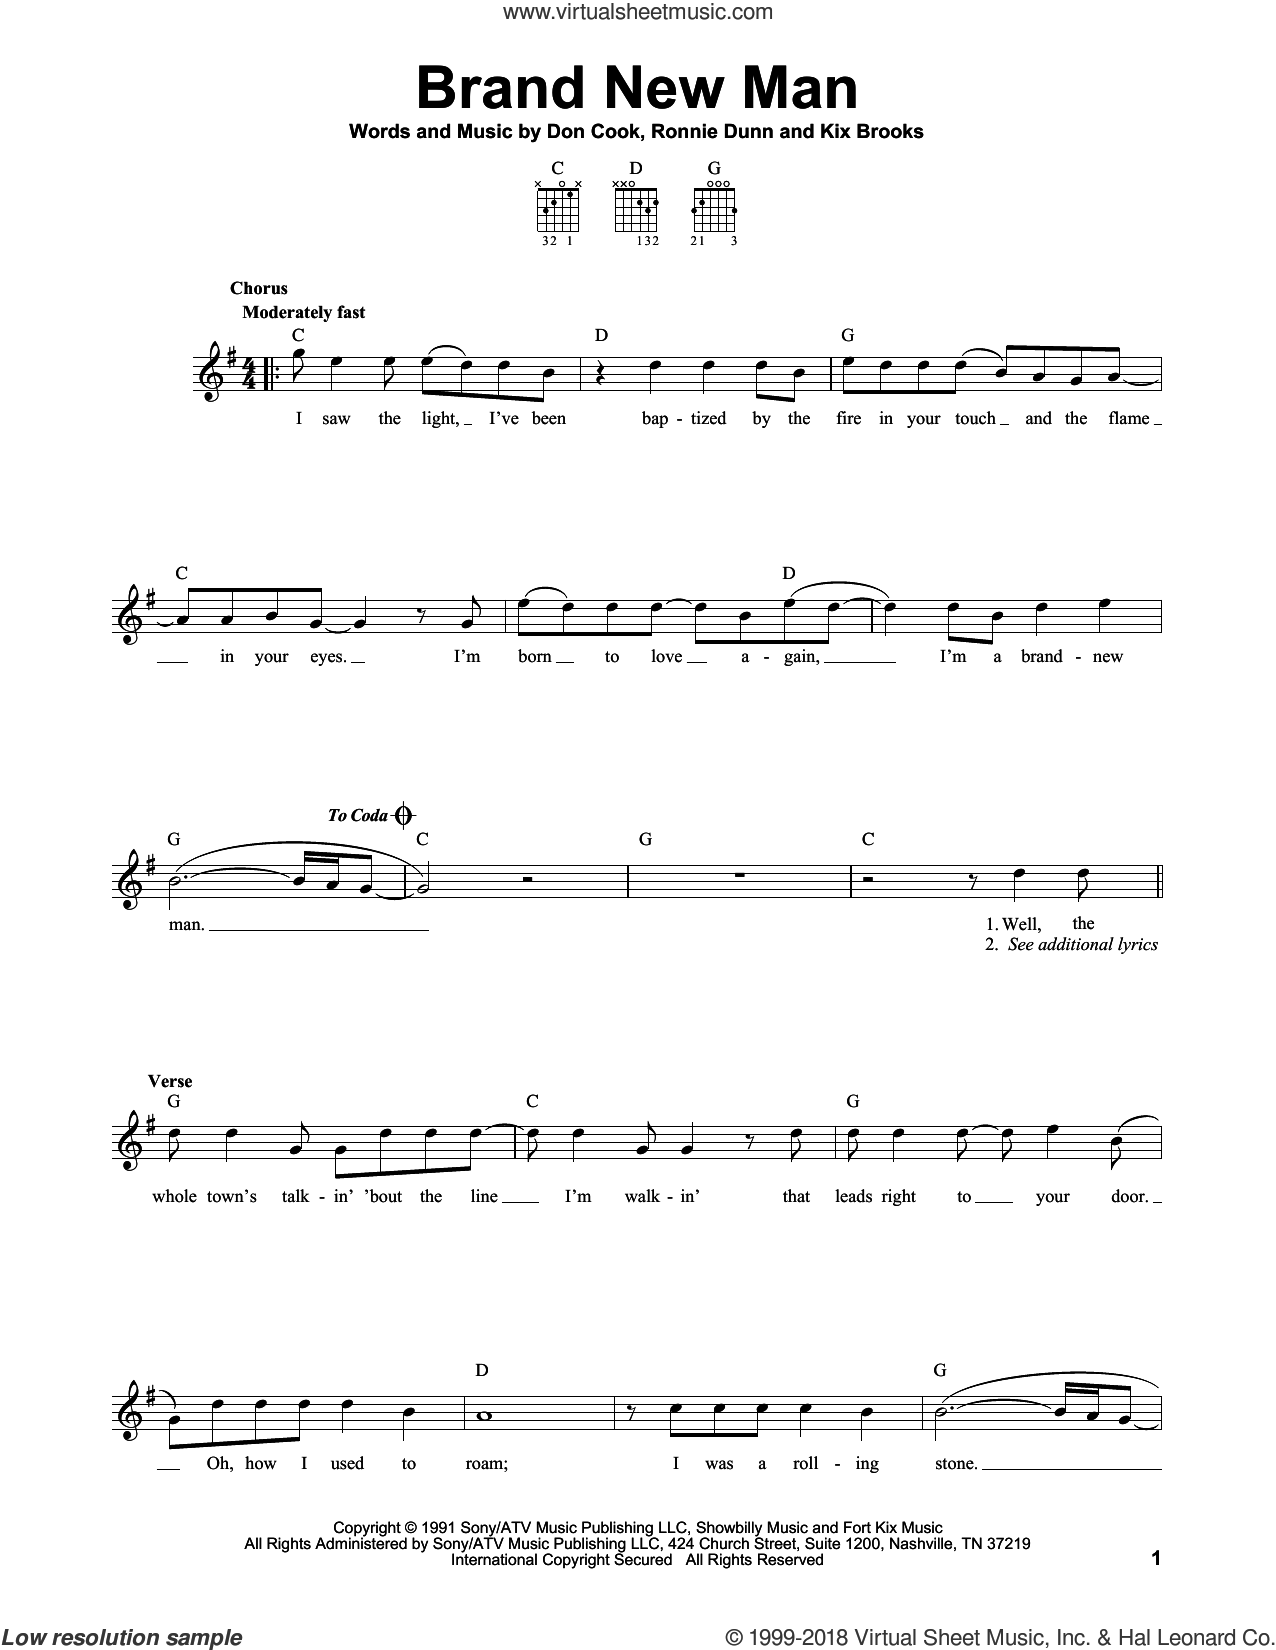 Brand New Man sheet music for guitar solo (chords) by Ronnie Dunn, Brooks & Dunn and Don Cook. Score Image Preview.